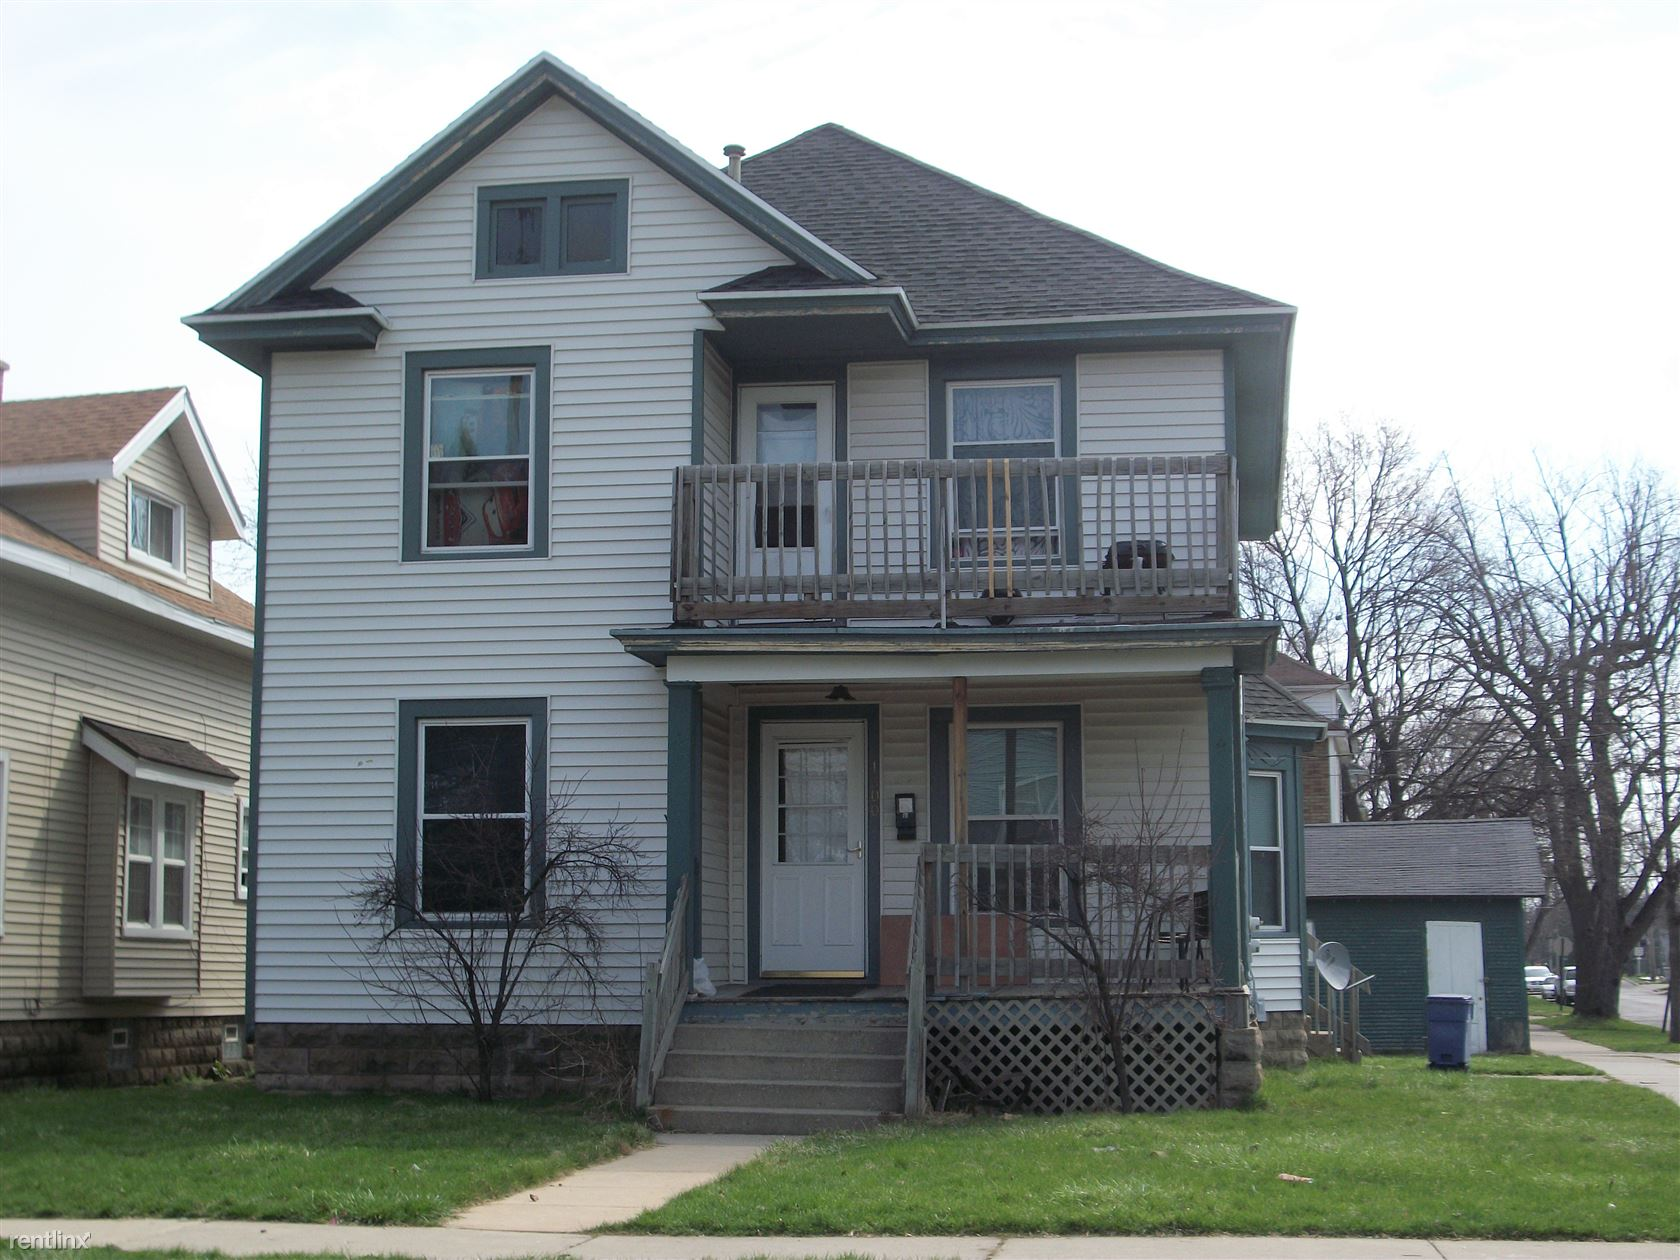 Apartment for Rent in Grand Rapids